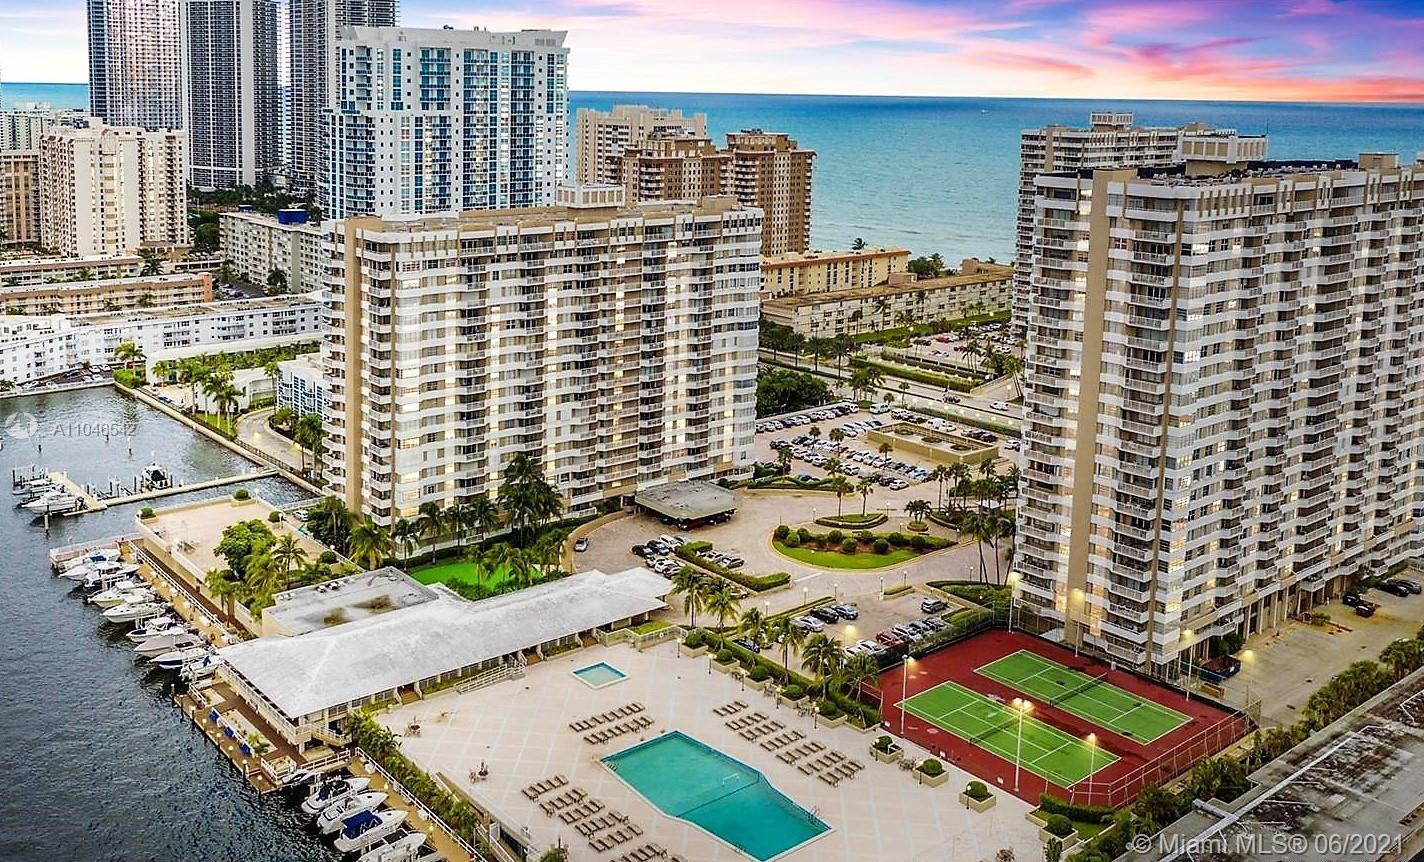 CONDO WITH STUNNING VIEWS OF THE OCEAN, BAY AND SKYLINE.  FULL SERVICE BUILDING. THE HEMISPHERES OFF